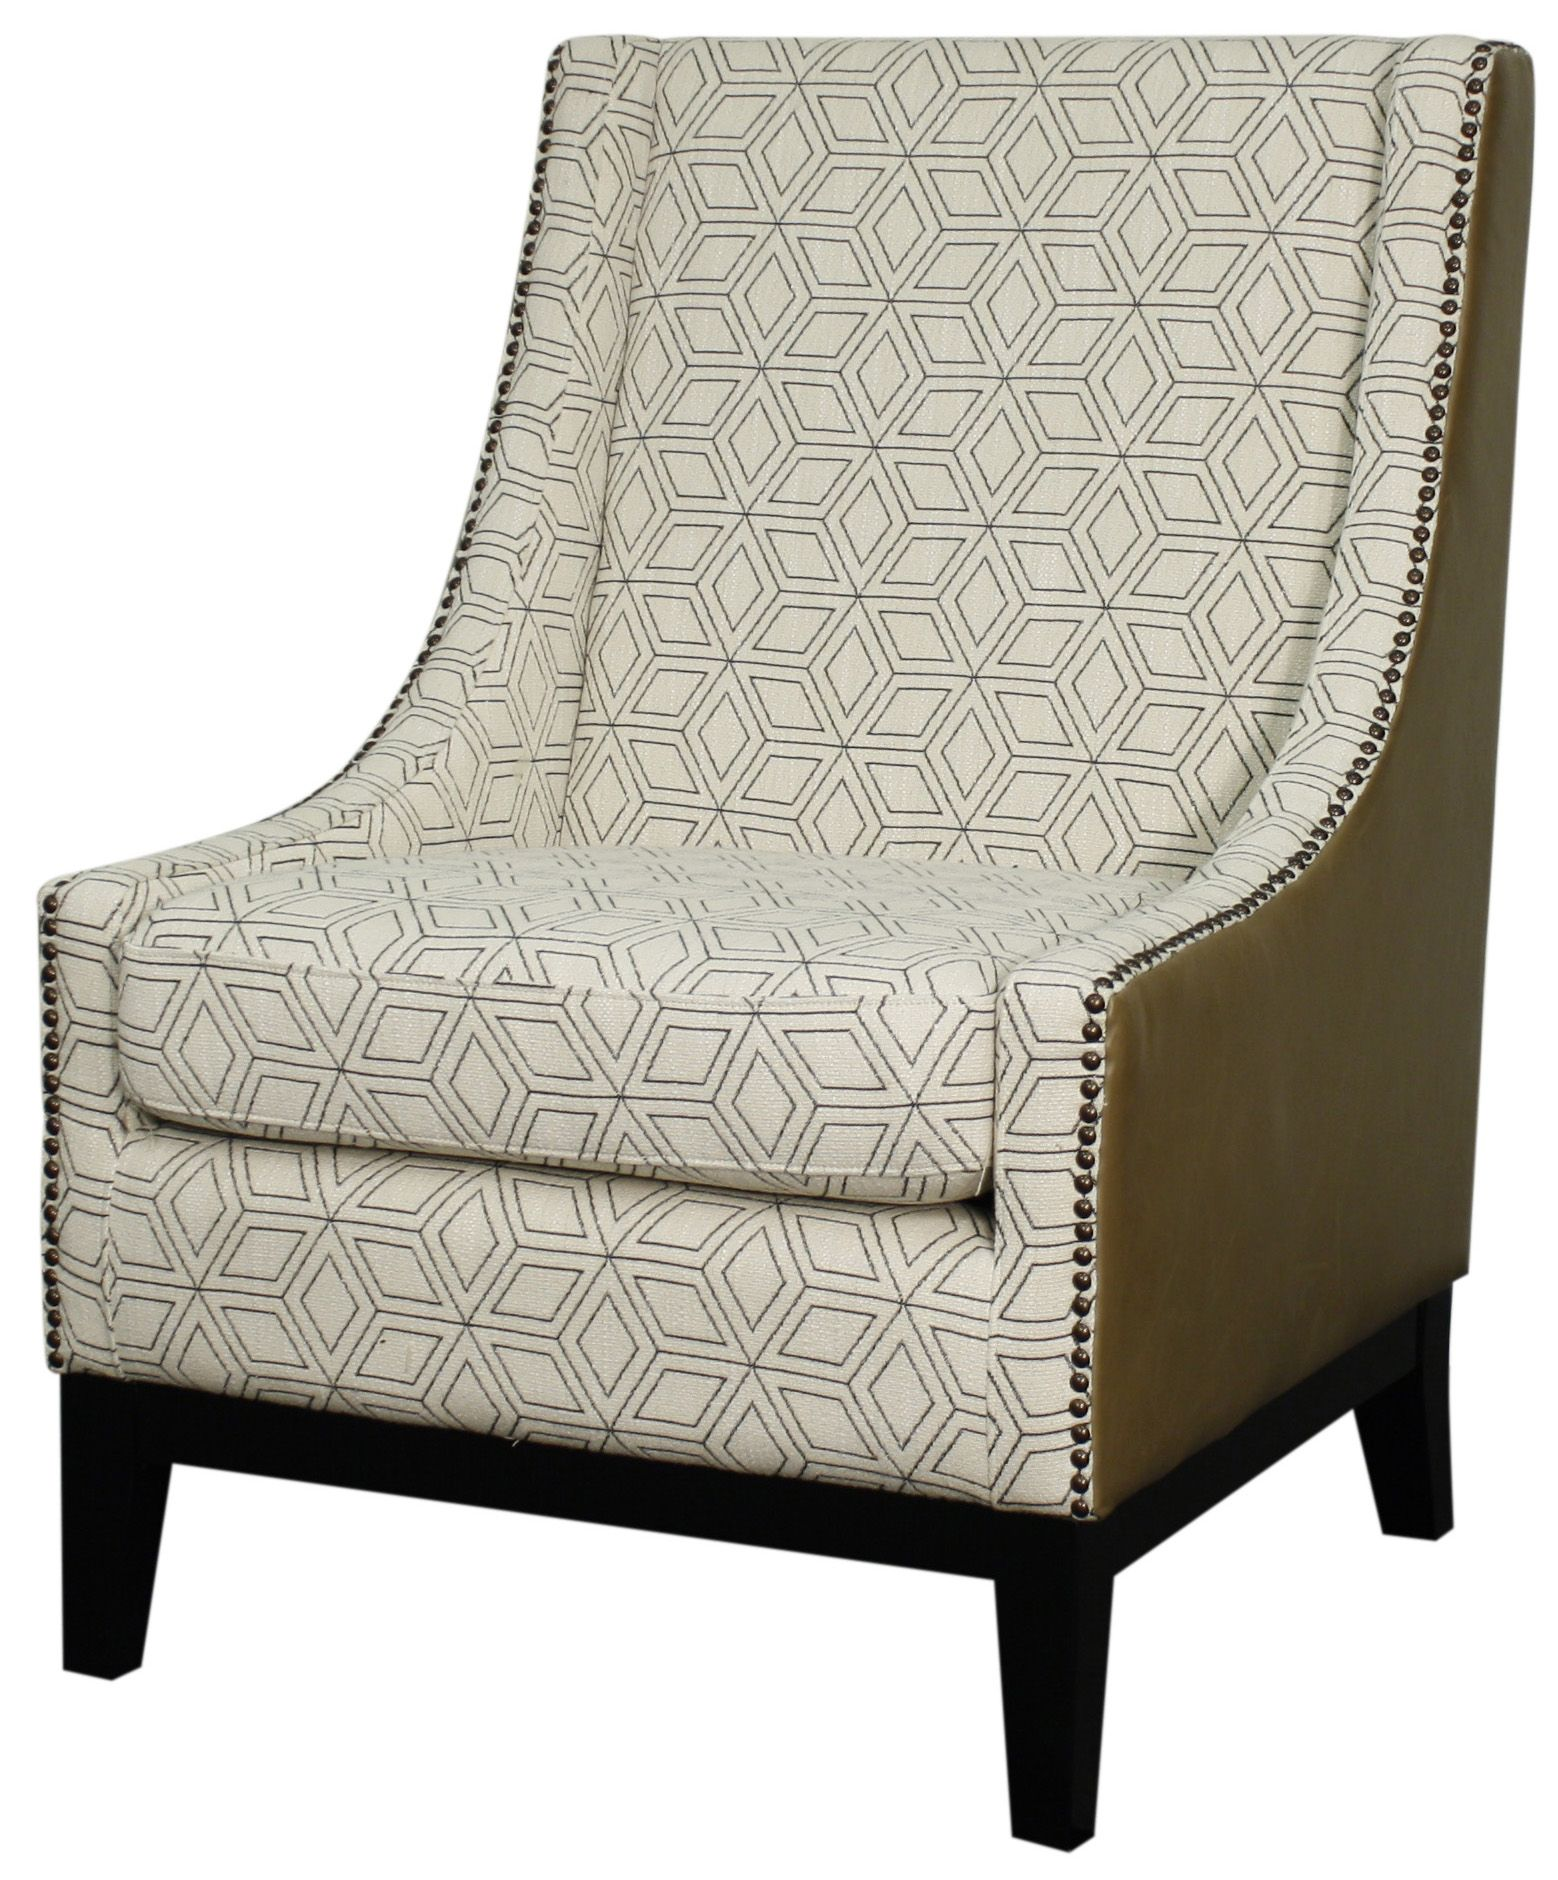 Marvelous Harrison Accent Chair In Geo Diamond/Vintage Taupe Pattern With Black Legs.  Constructed From